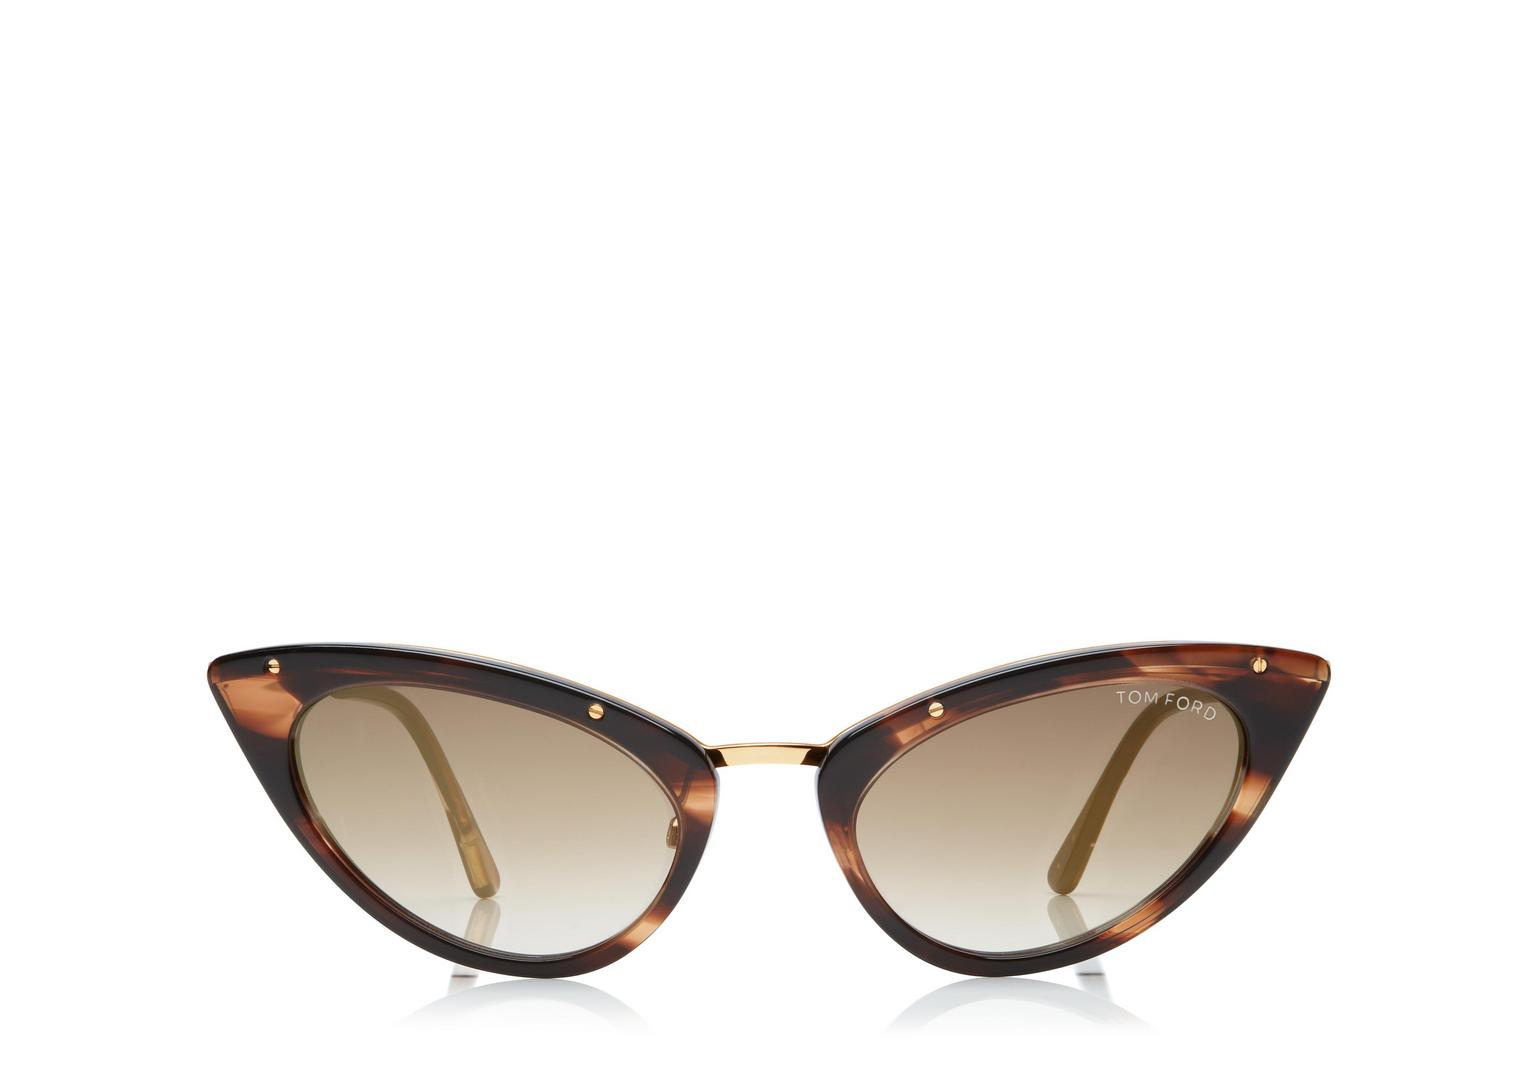 tom ford sunglasses cat eye grace cat eye sunglasses. Cars Review. Best American Auto & Cars Review